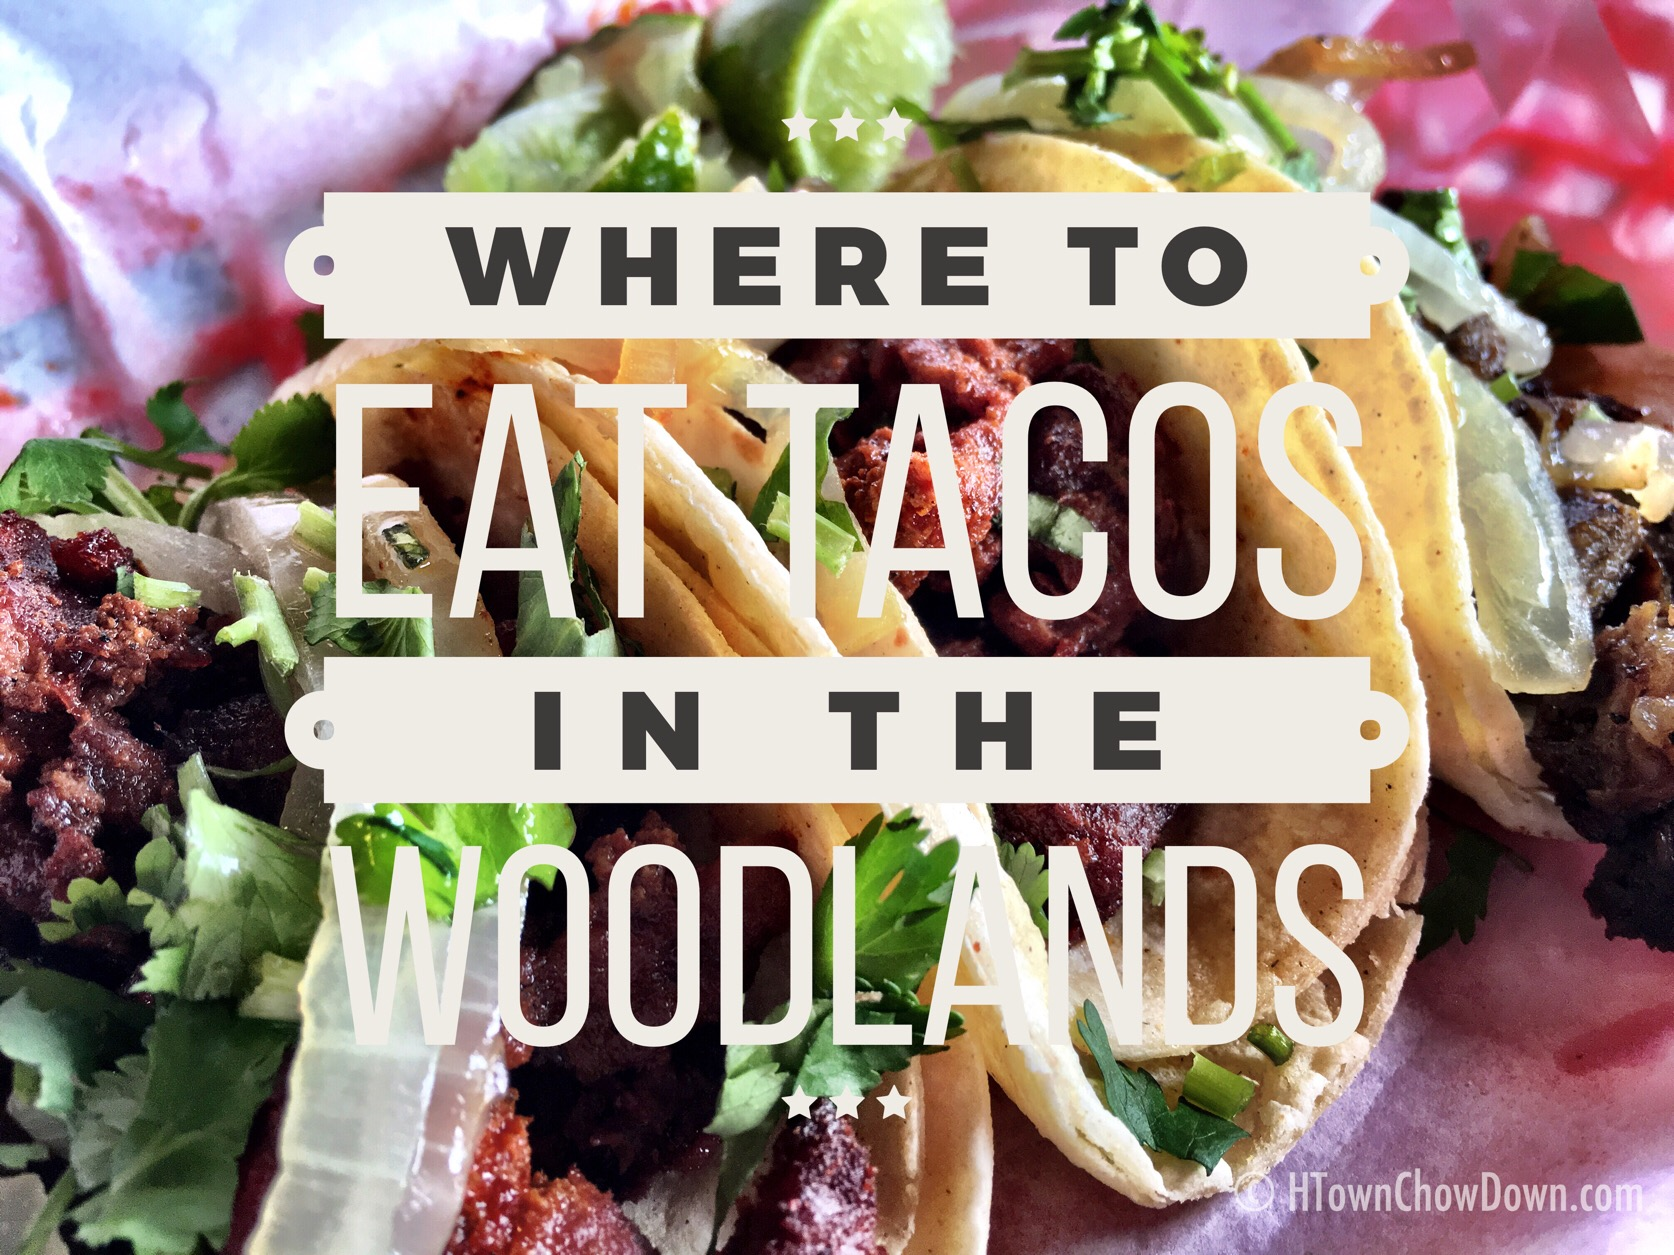 where_to_eat_tacos